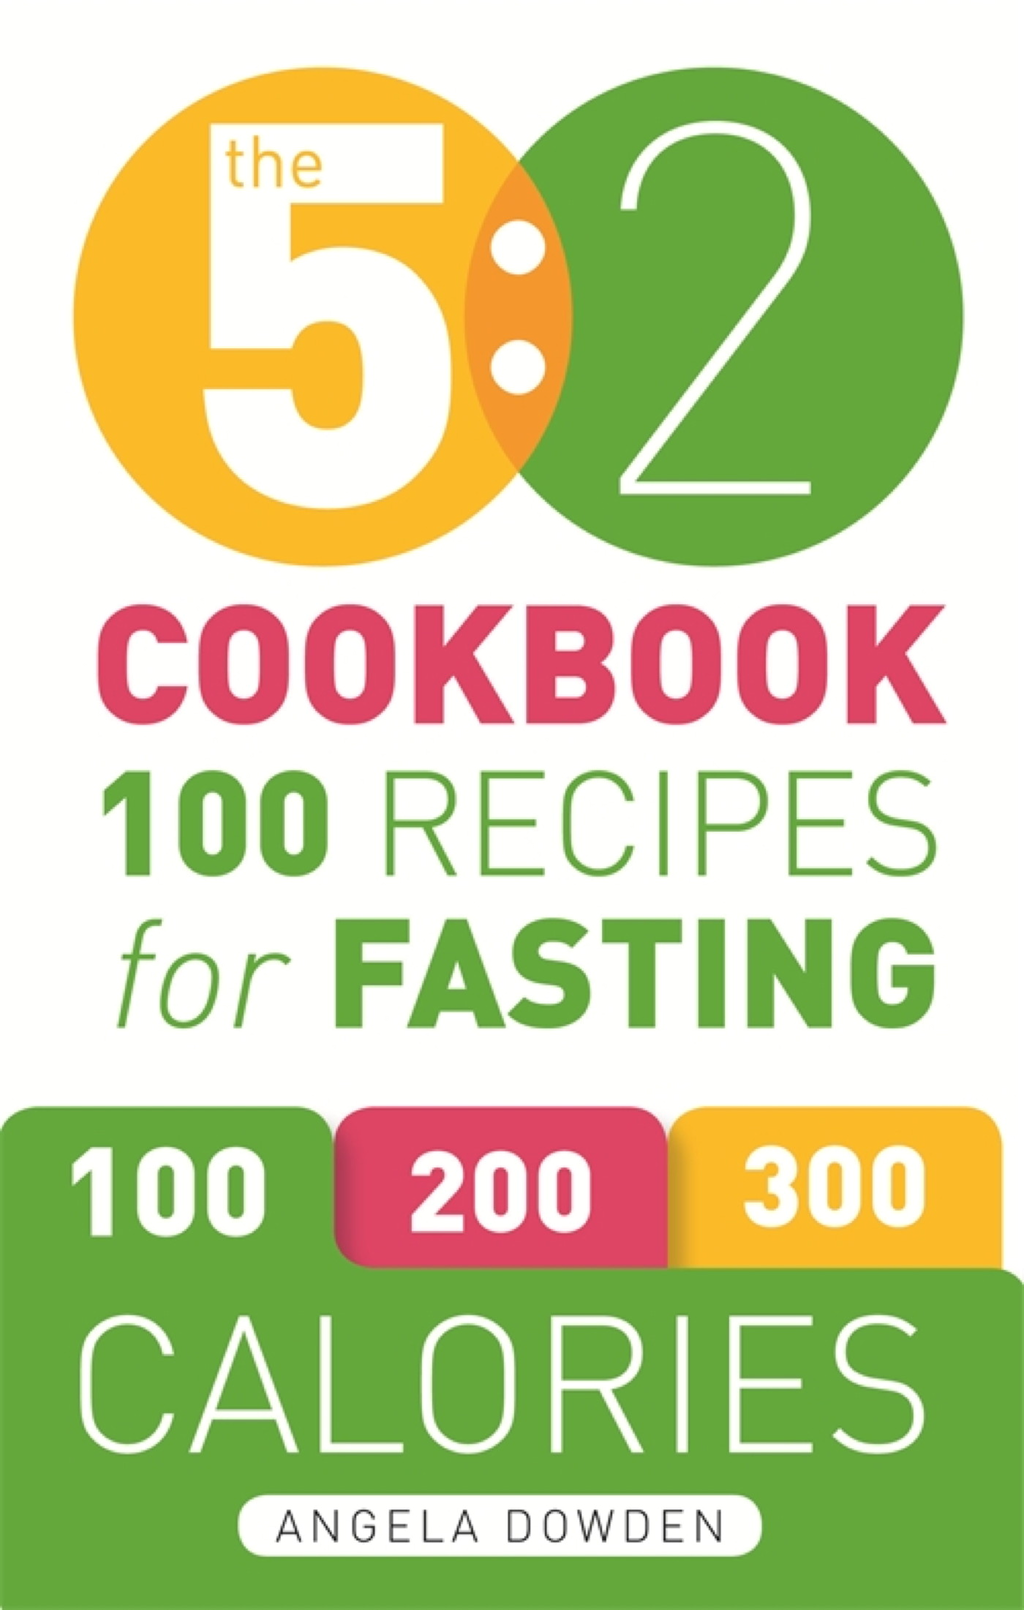 The 5:2 Cookbook Recipes for the 2-Day Fasting Diet. Makes 500 or 600 Calorie Days Easier and Tastier.